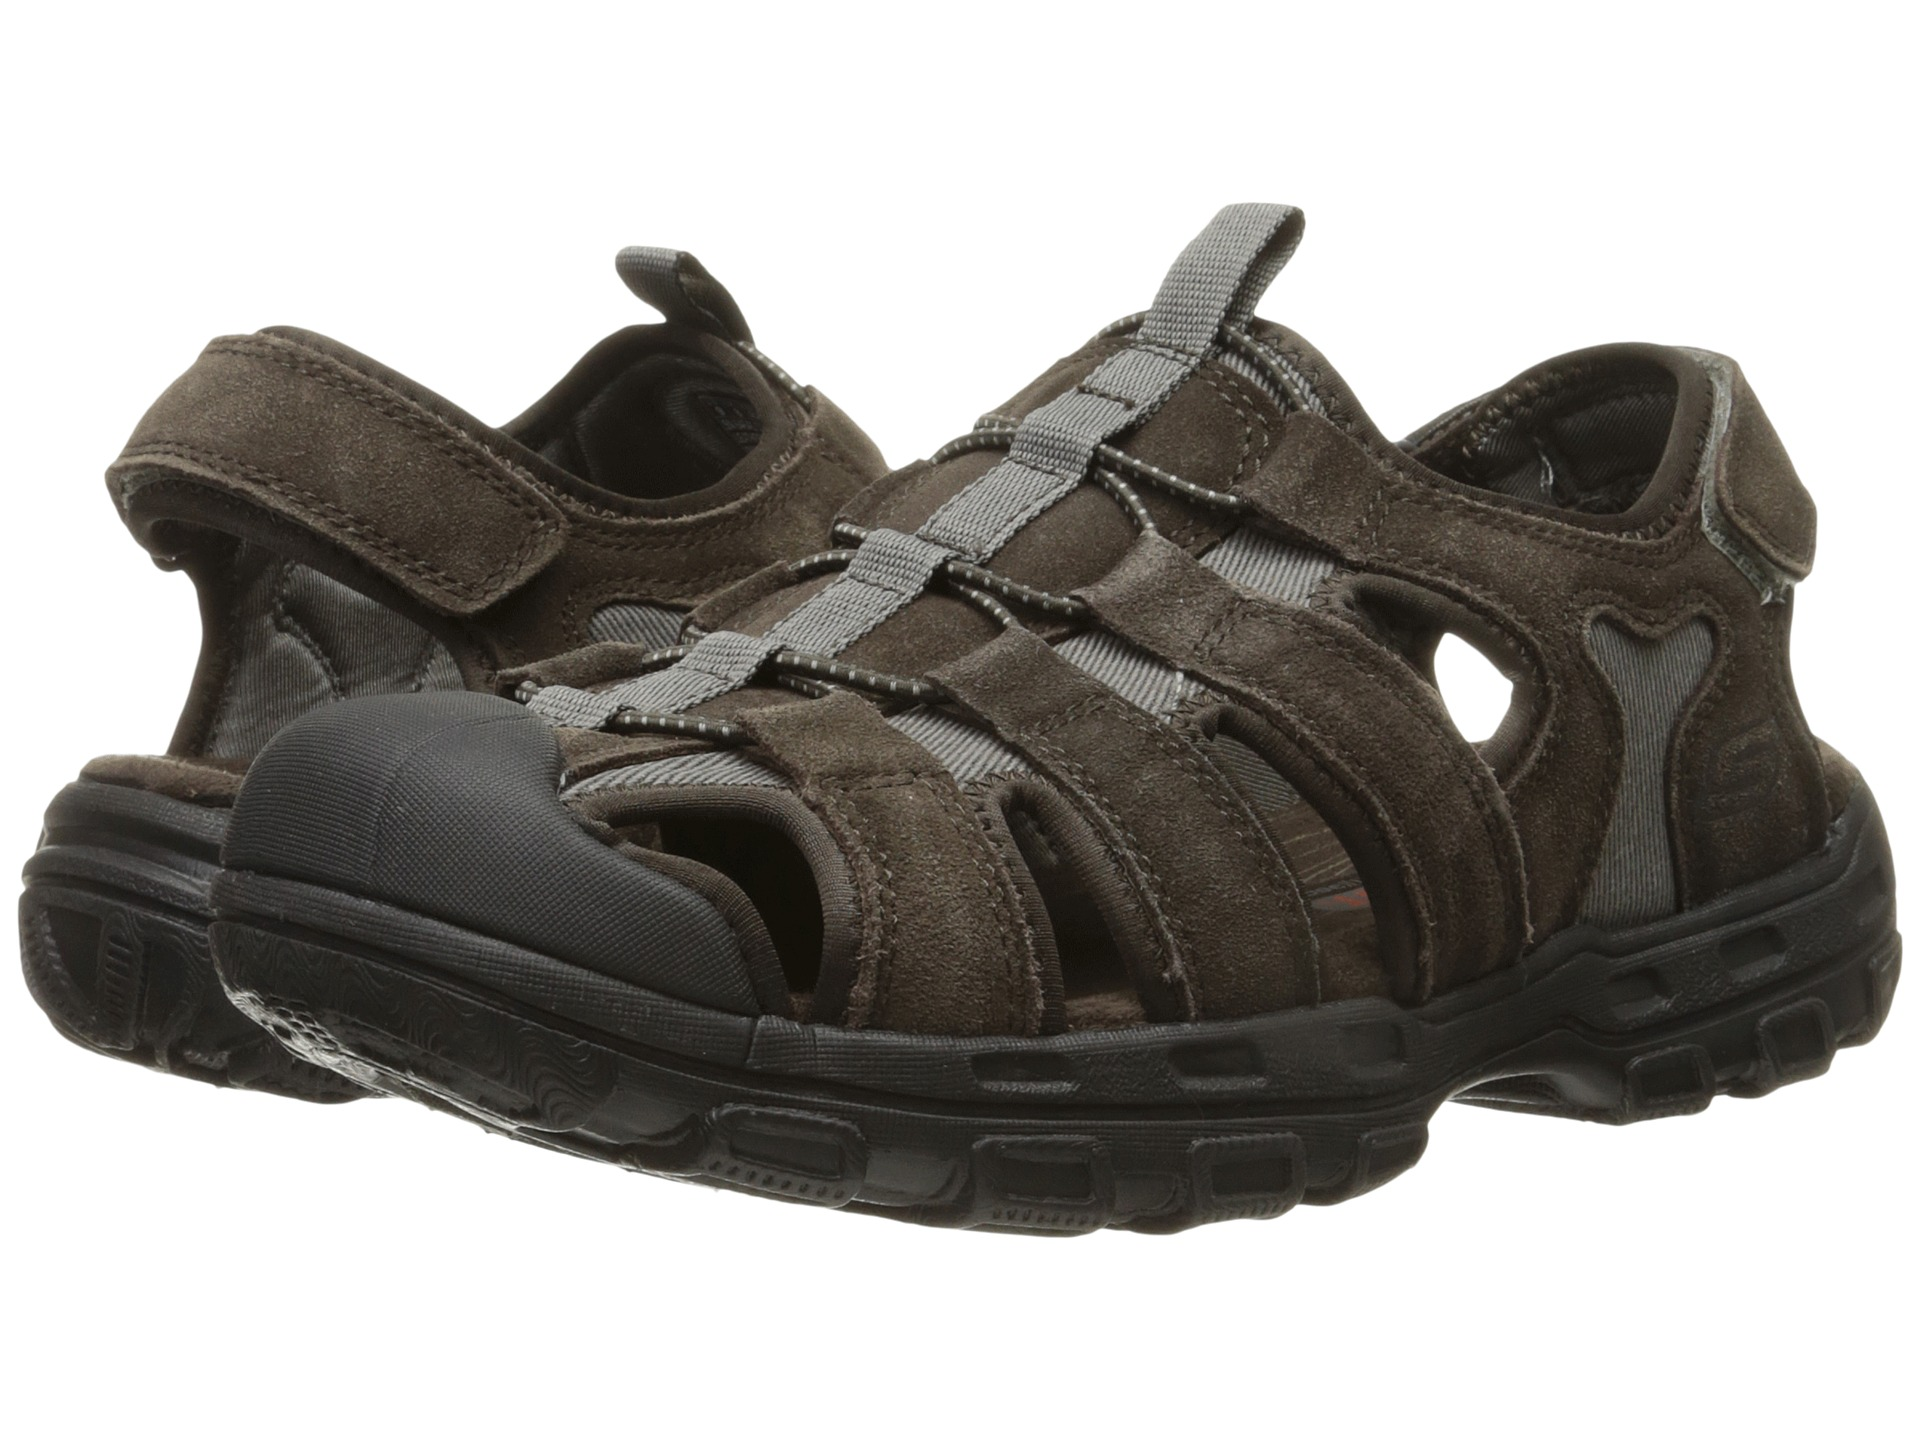 e6bce020e skechers relaxed fit sandals sale   OFF61% Discounted